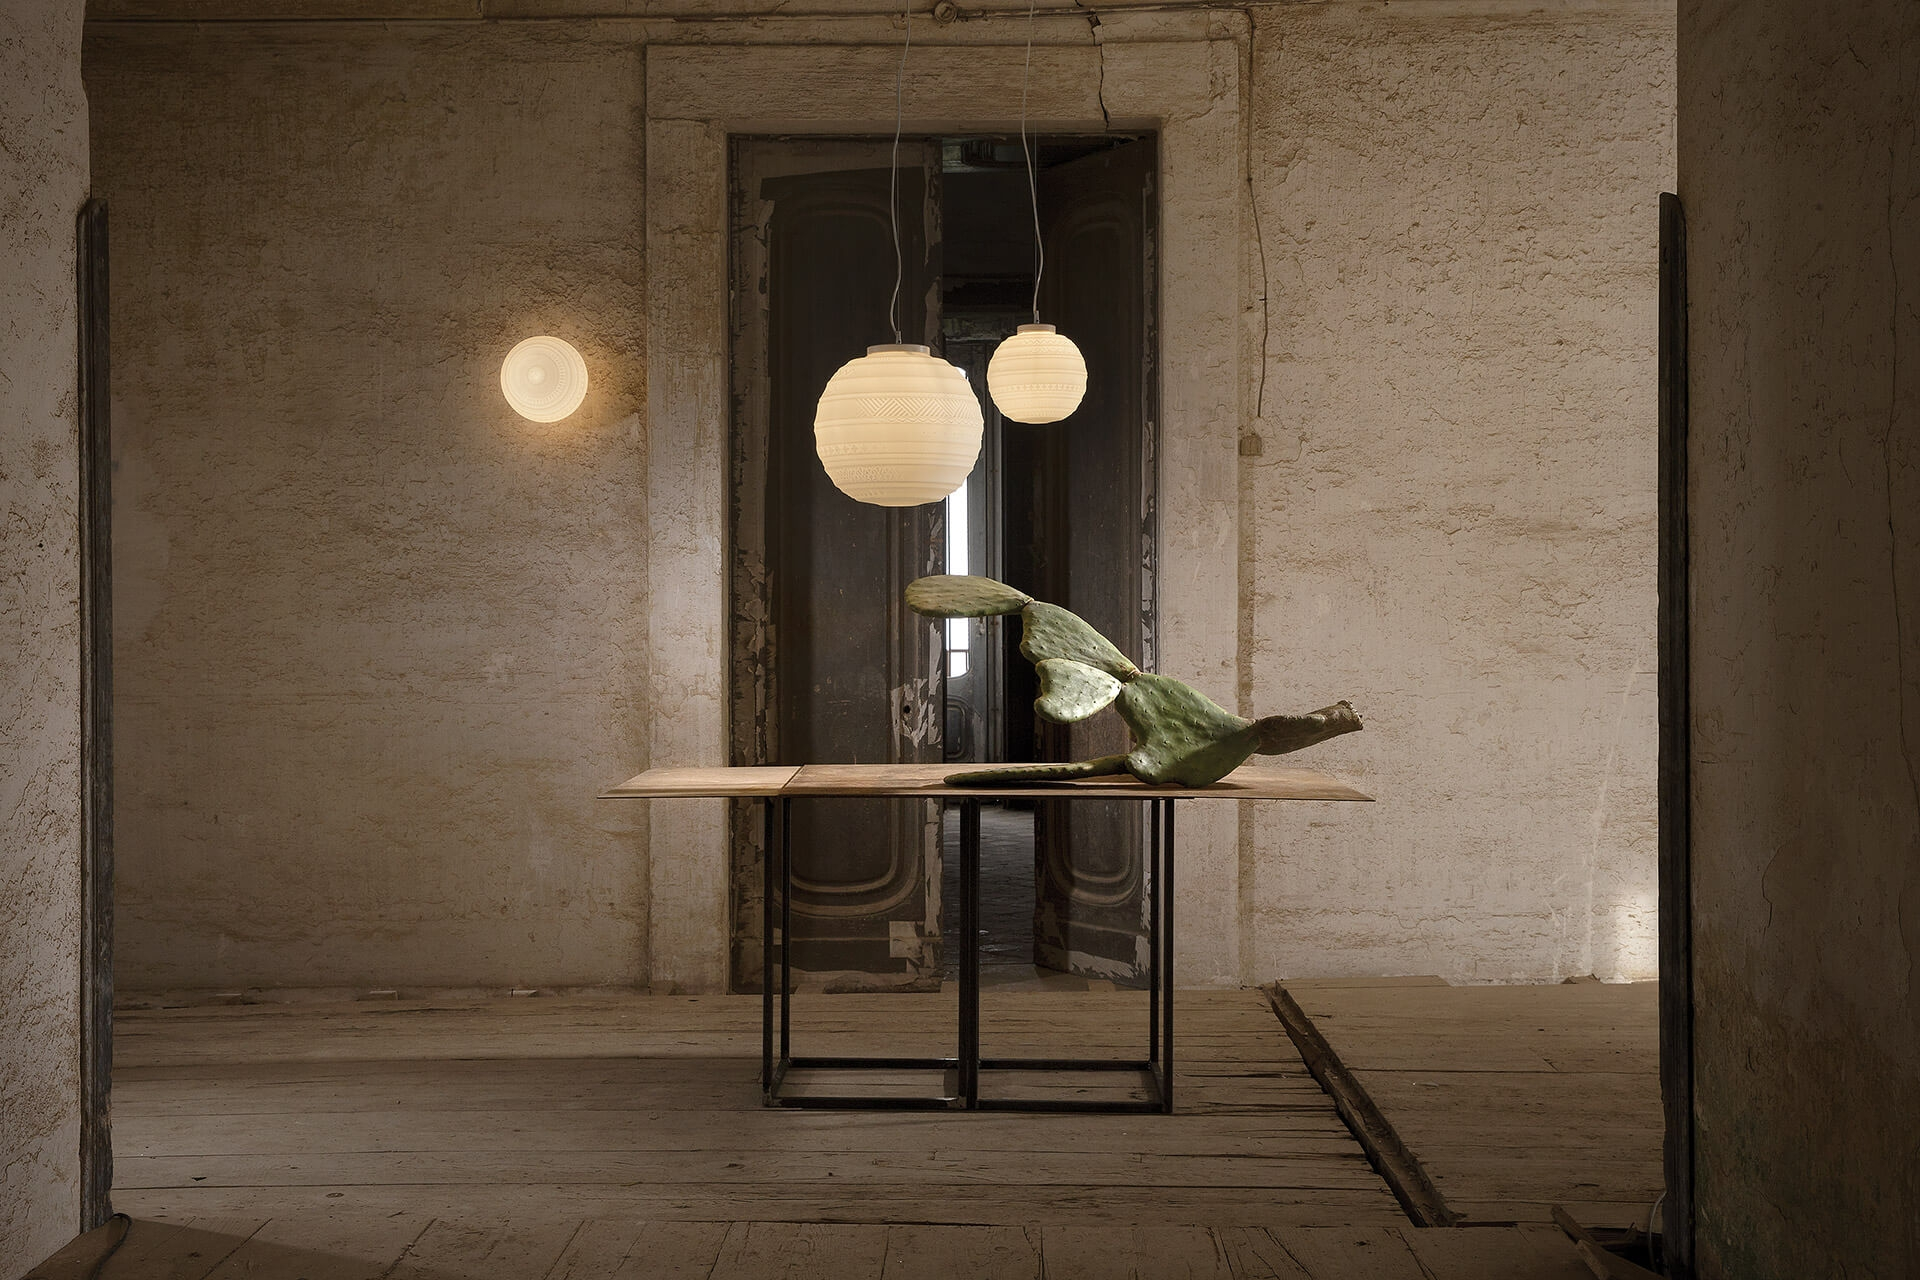 Karman braille_suspension_lamp